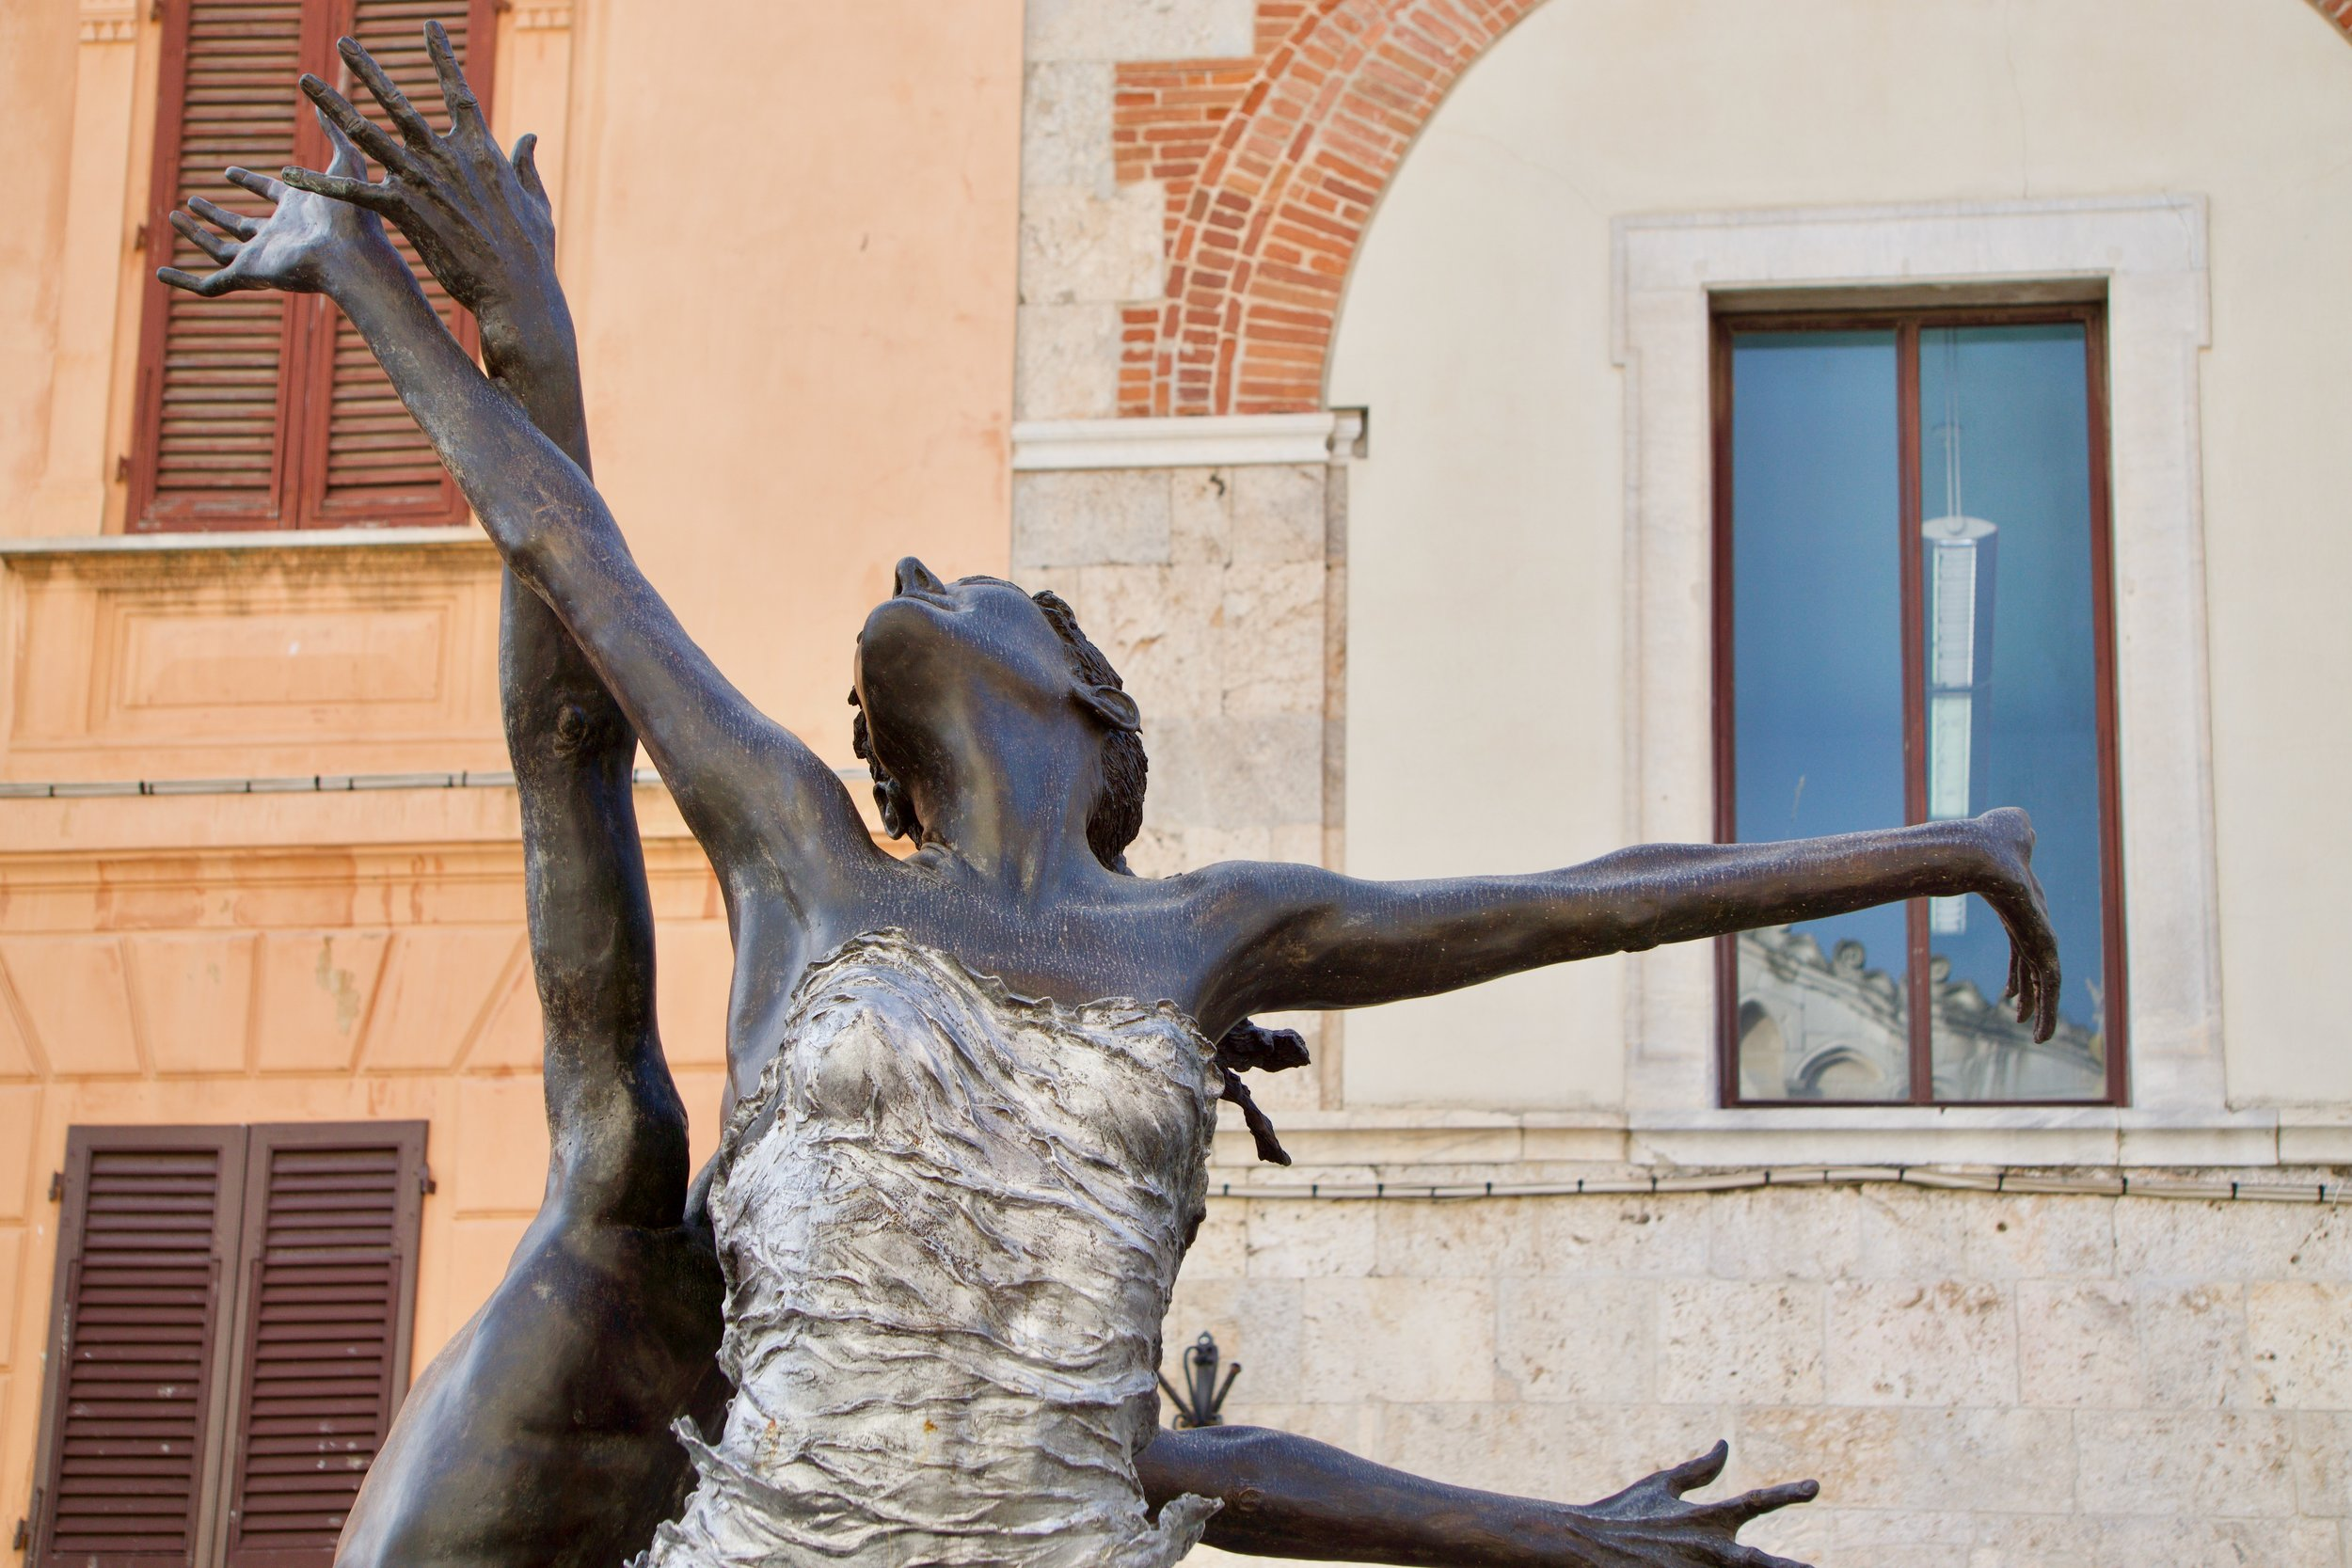 Apparently there is a yoga theme all over Tuscany! Loved this happy dancing sculpture!